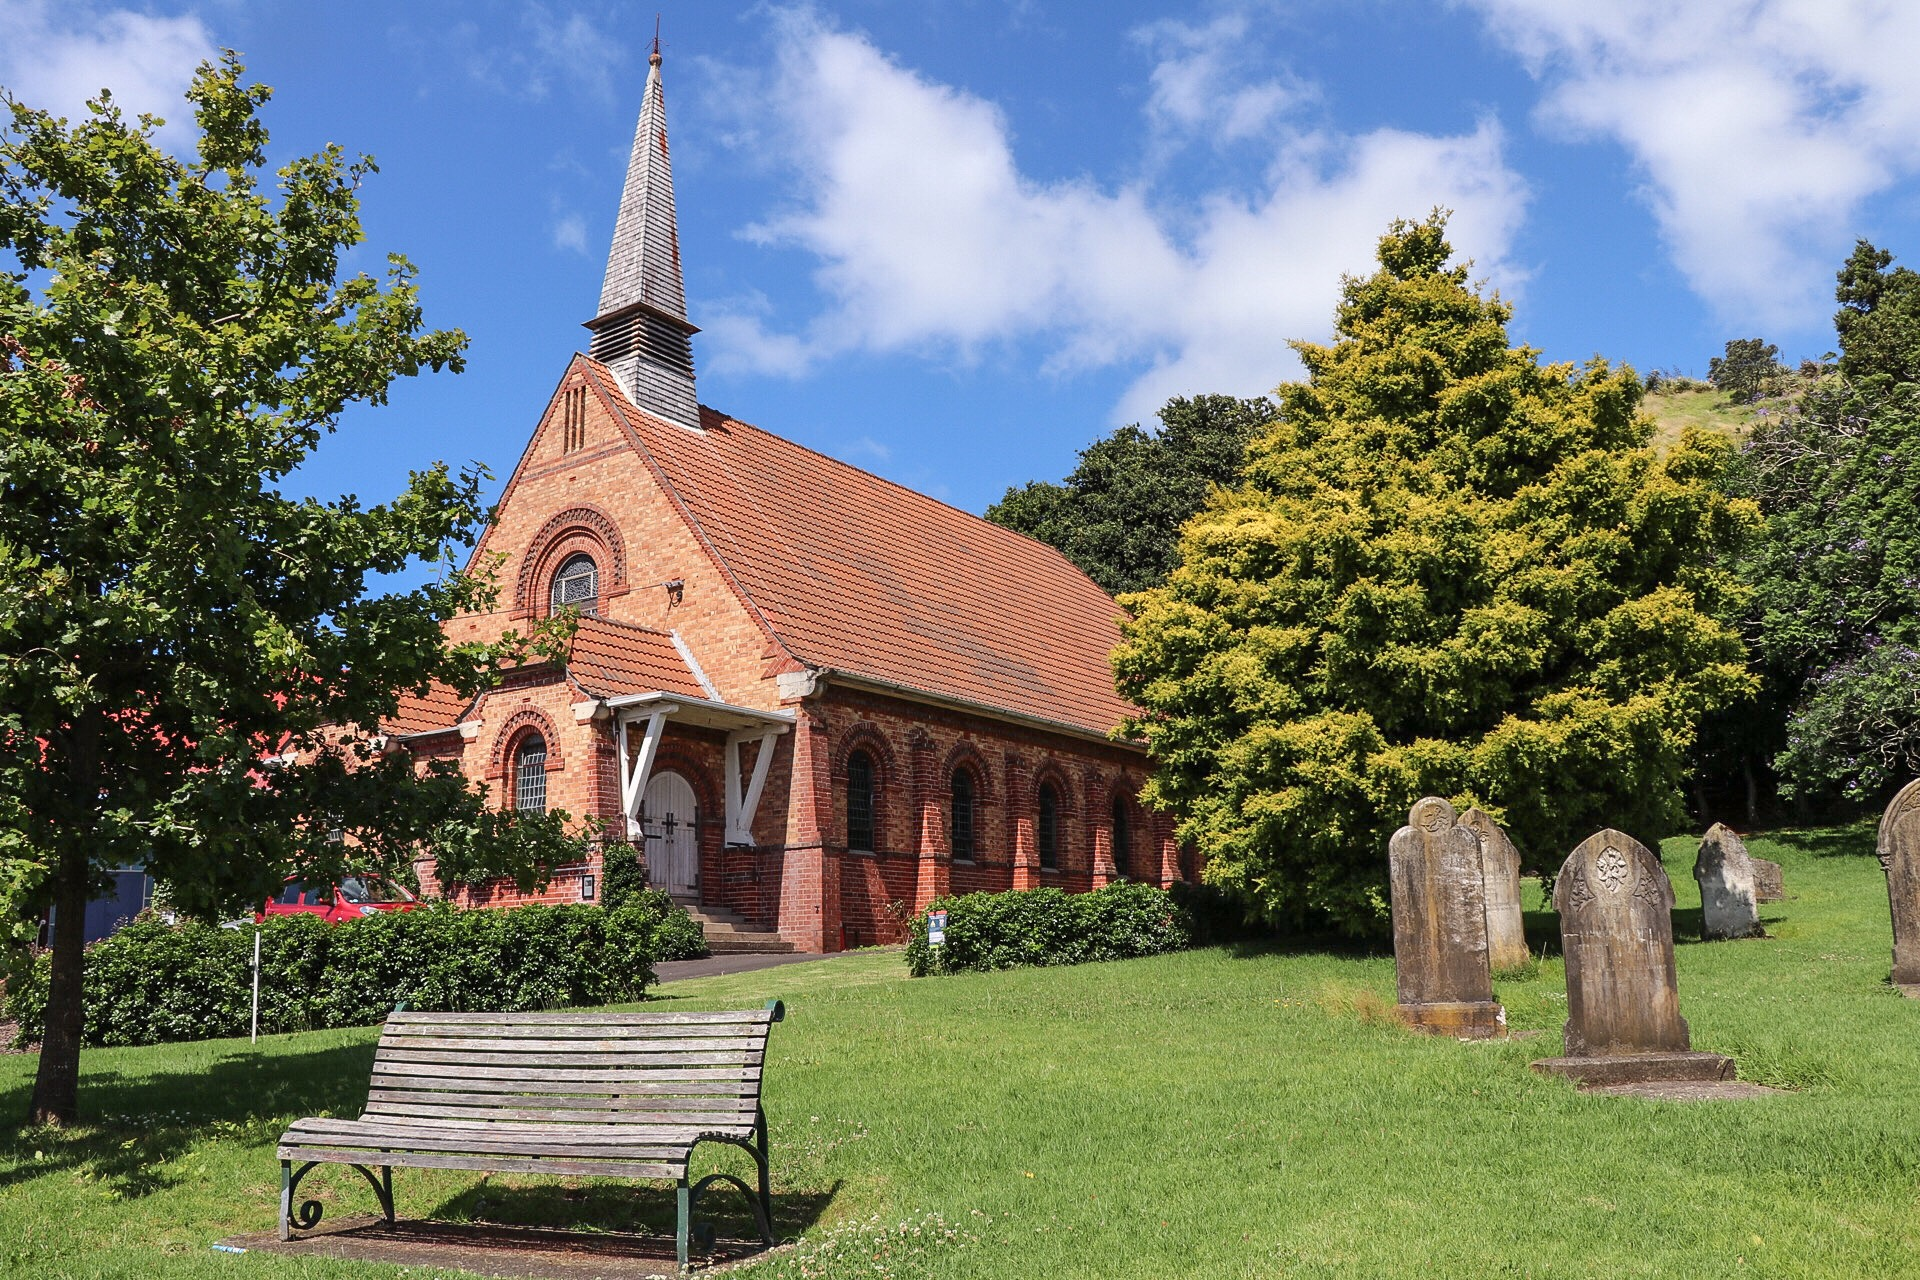 St Pauls of Devonport by Kathryn Nobbs